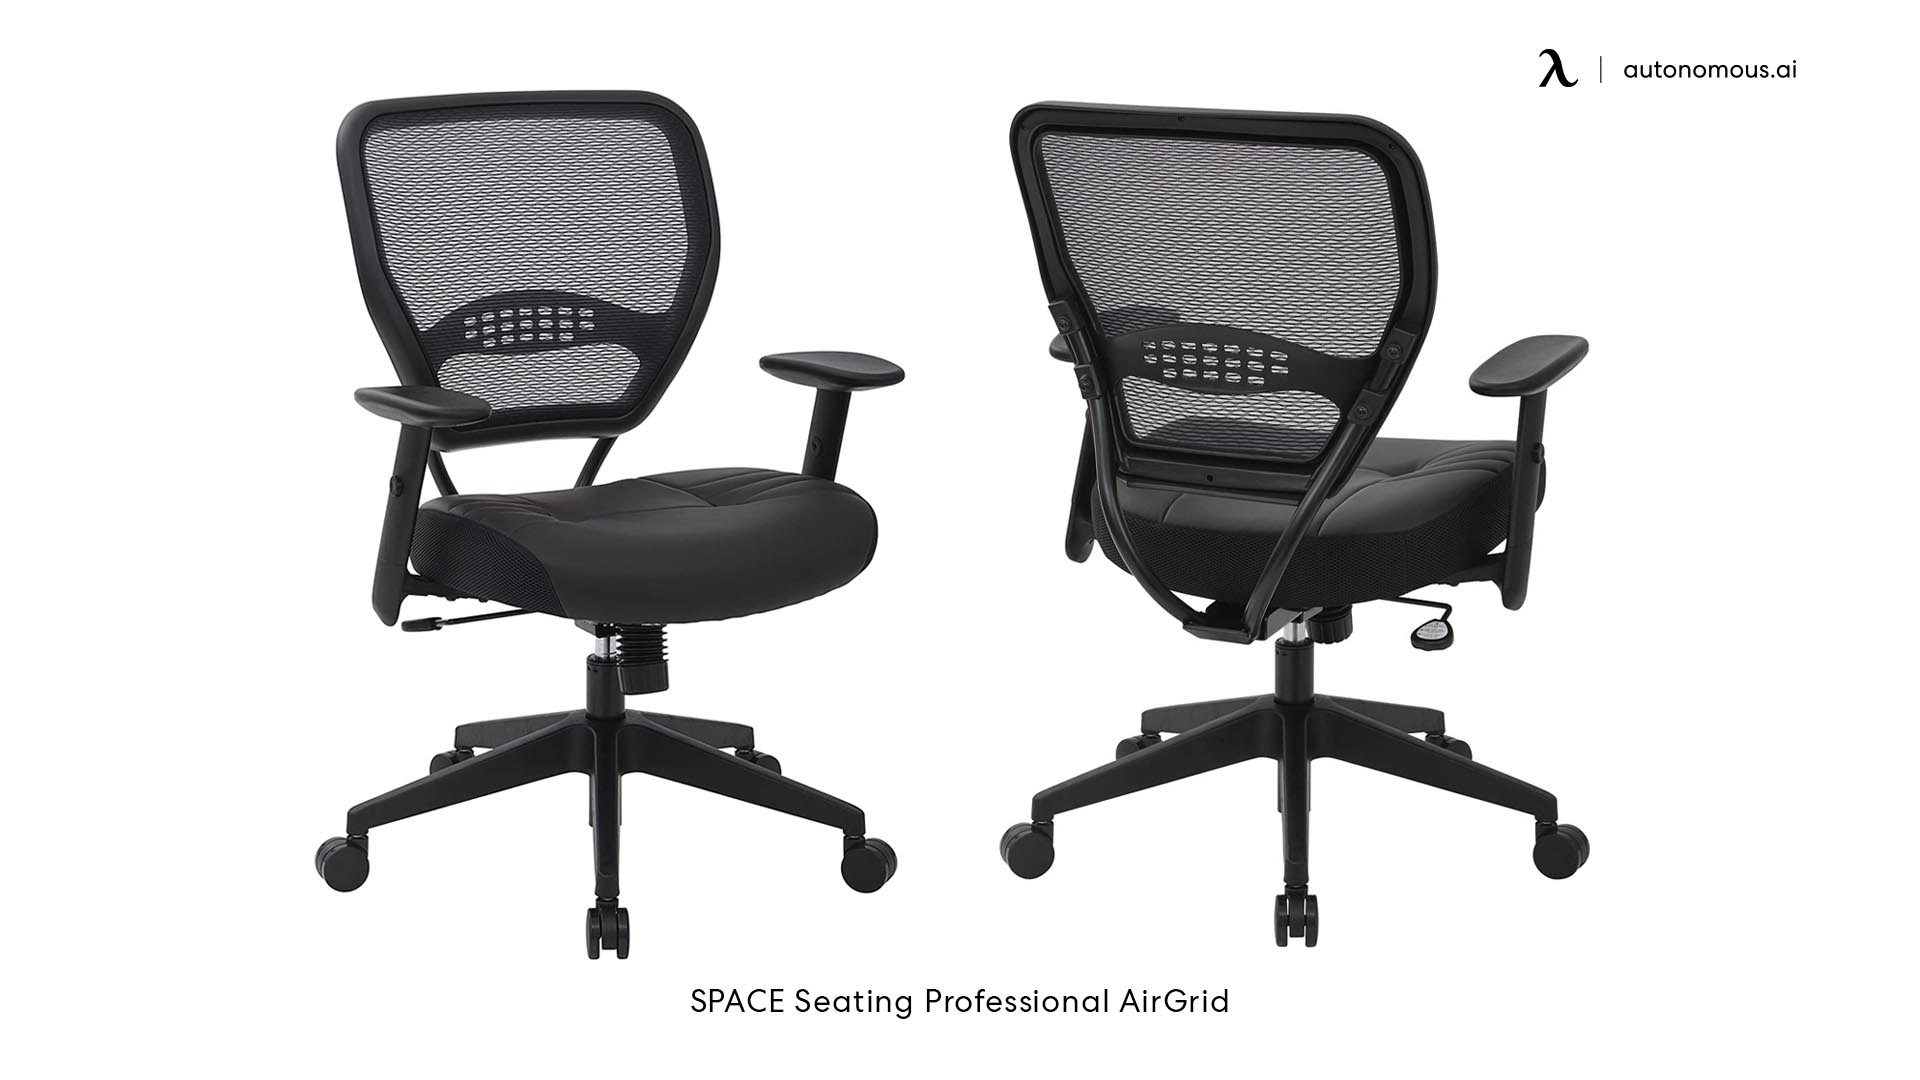 Professional Airgrid Chair by Space Seating